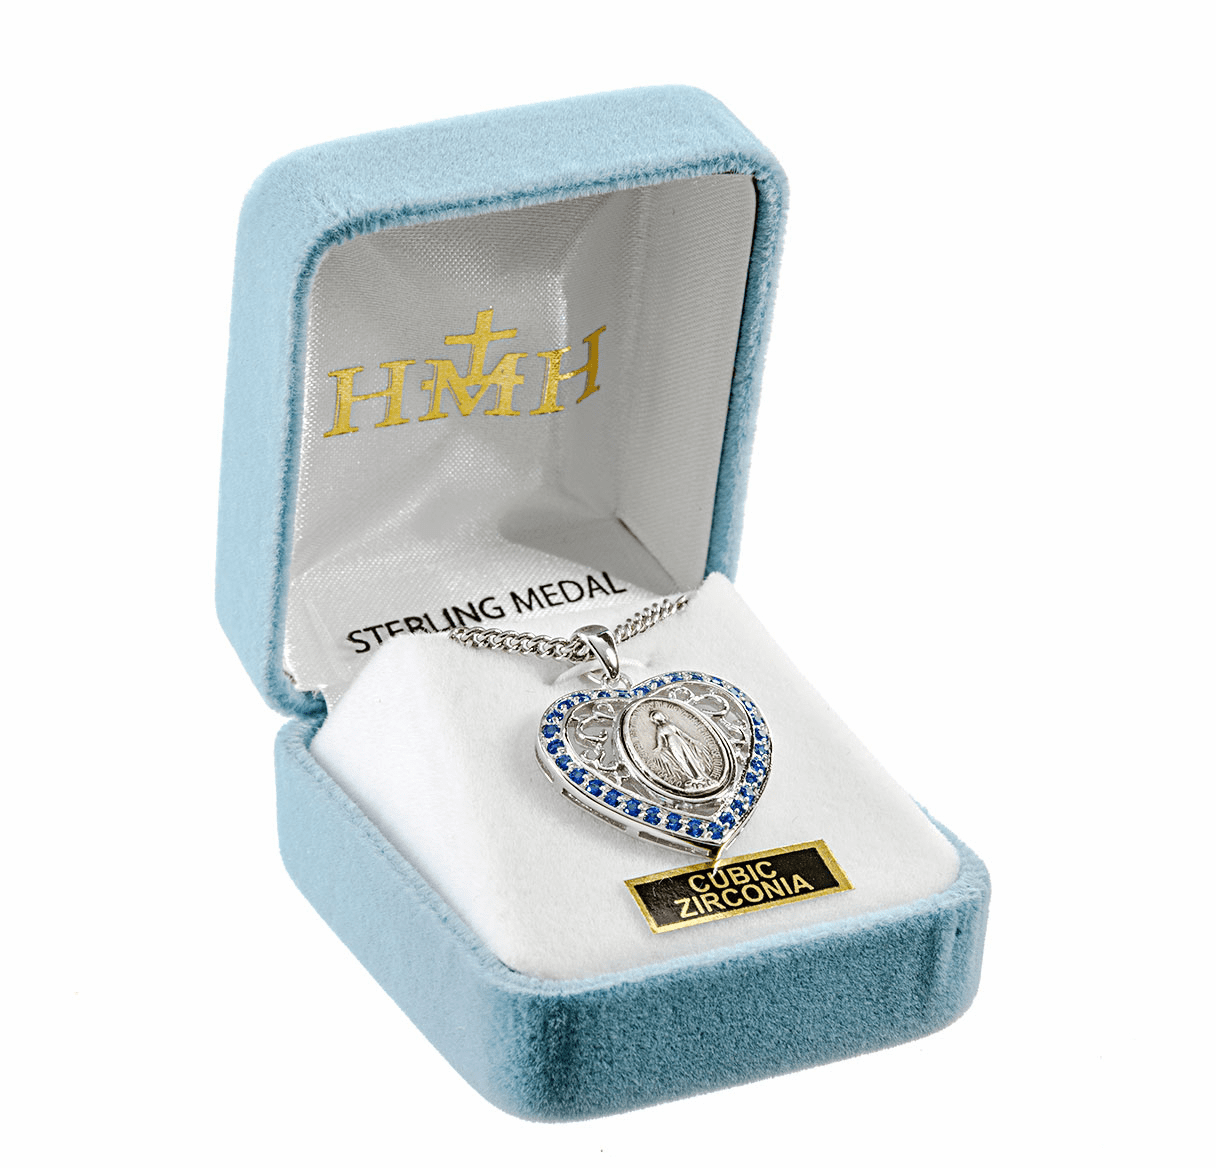 HMH Religious Miraculous Medals Jewelry